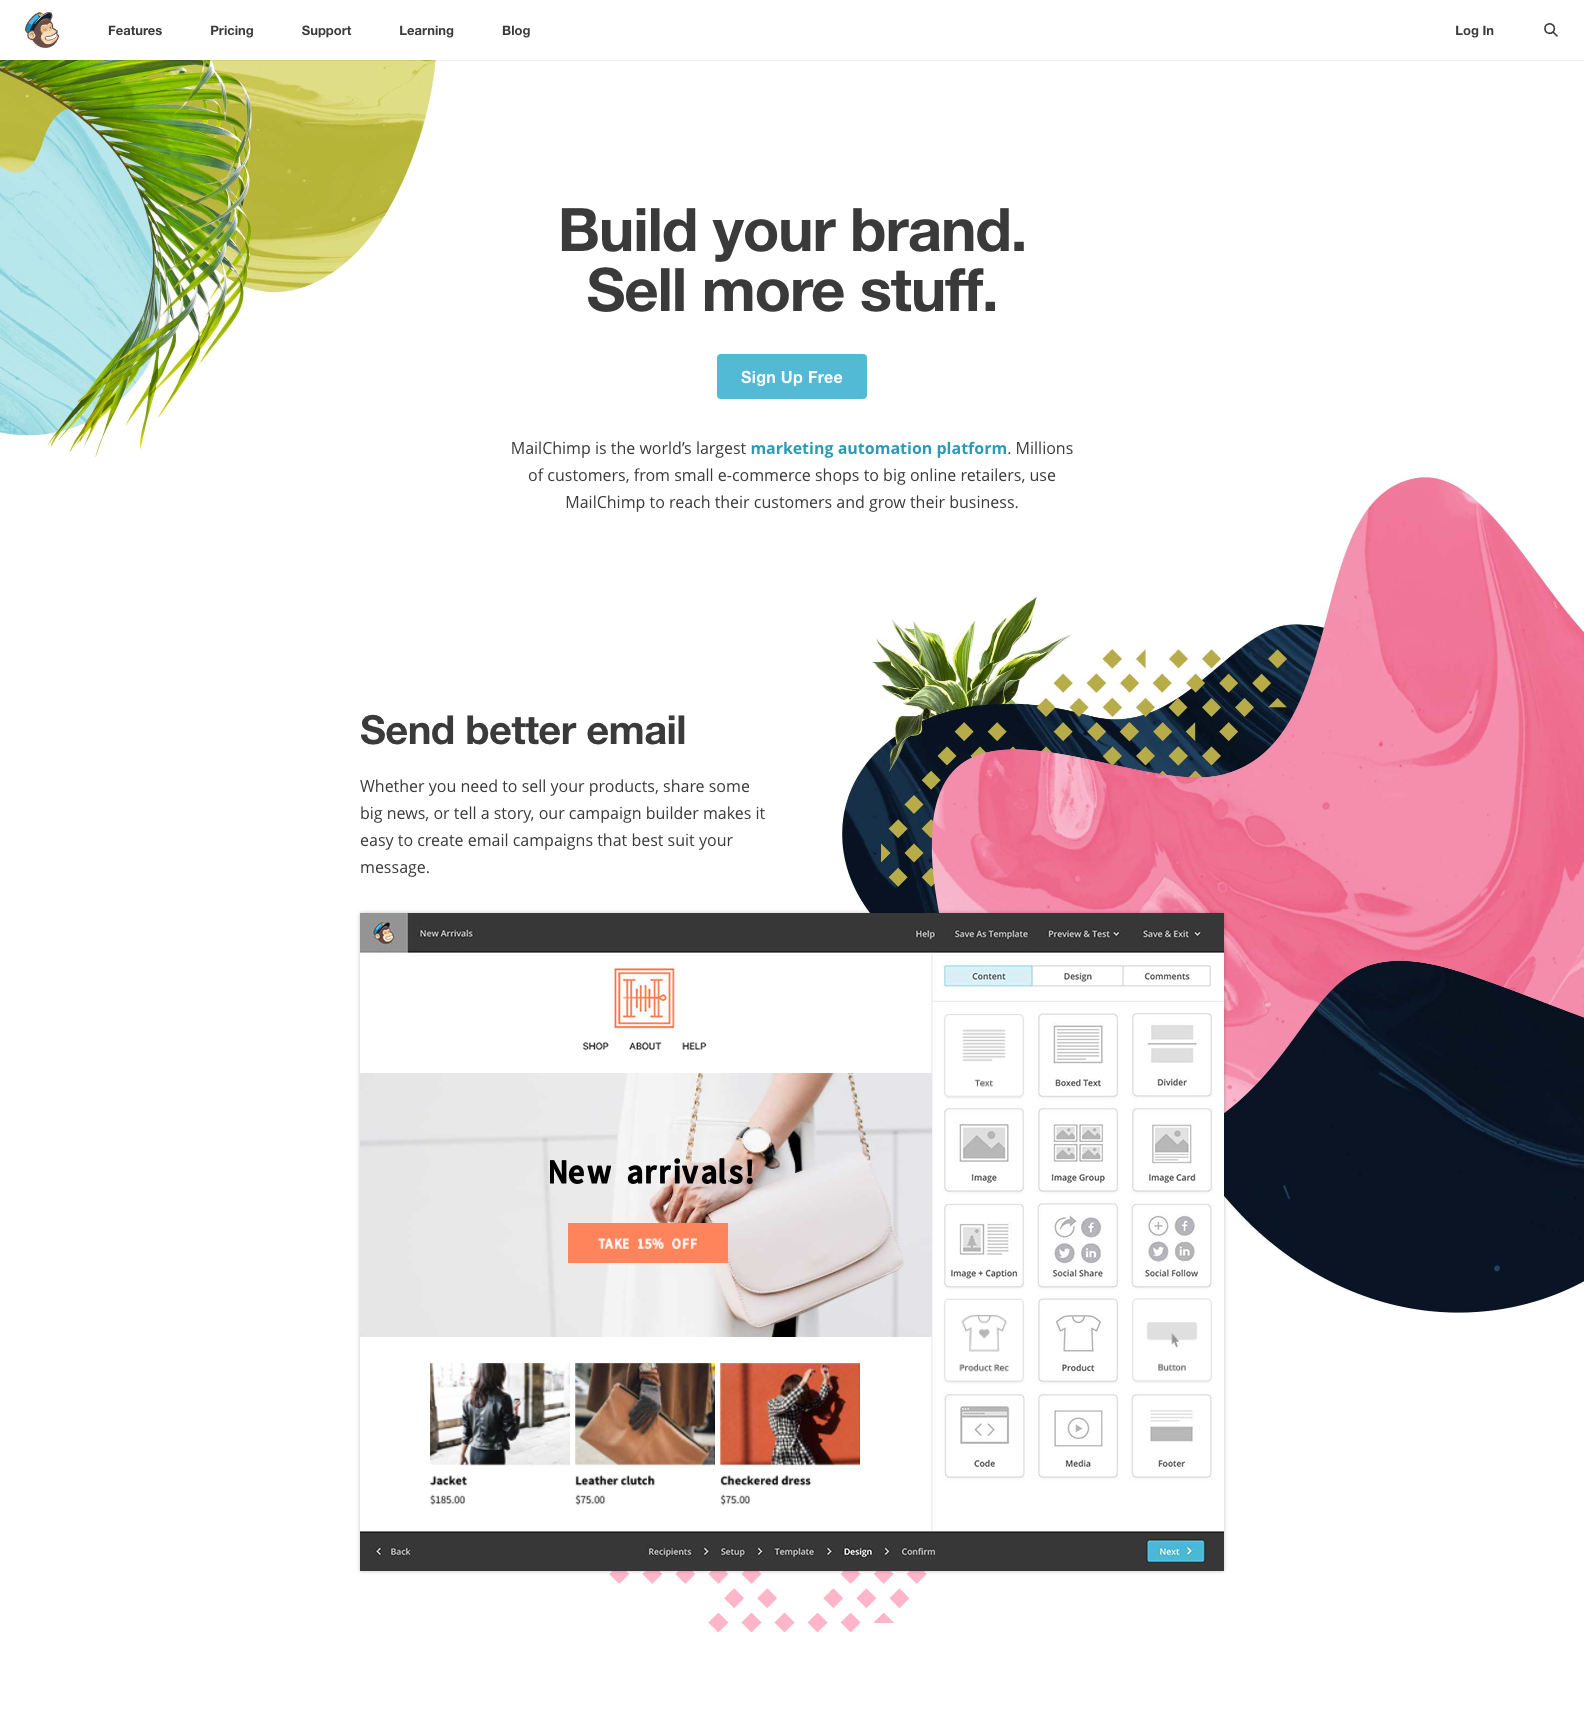 mailchimp-why-people-buy-your-product